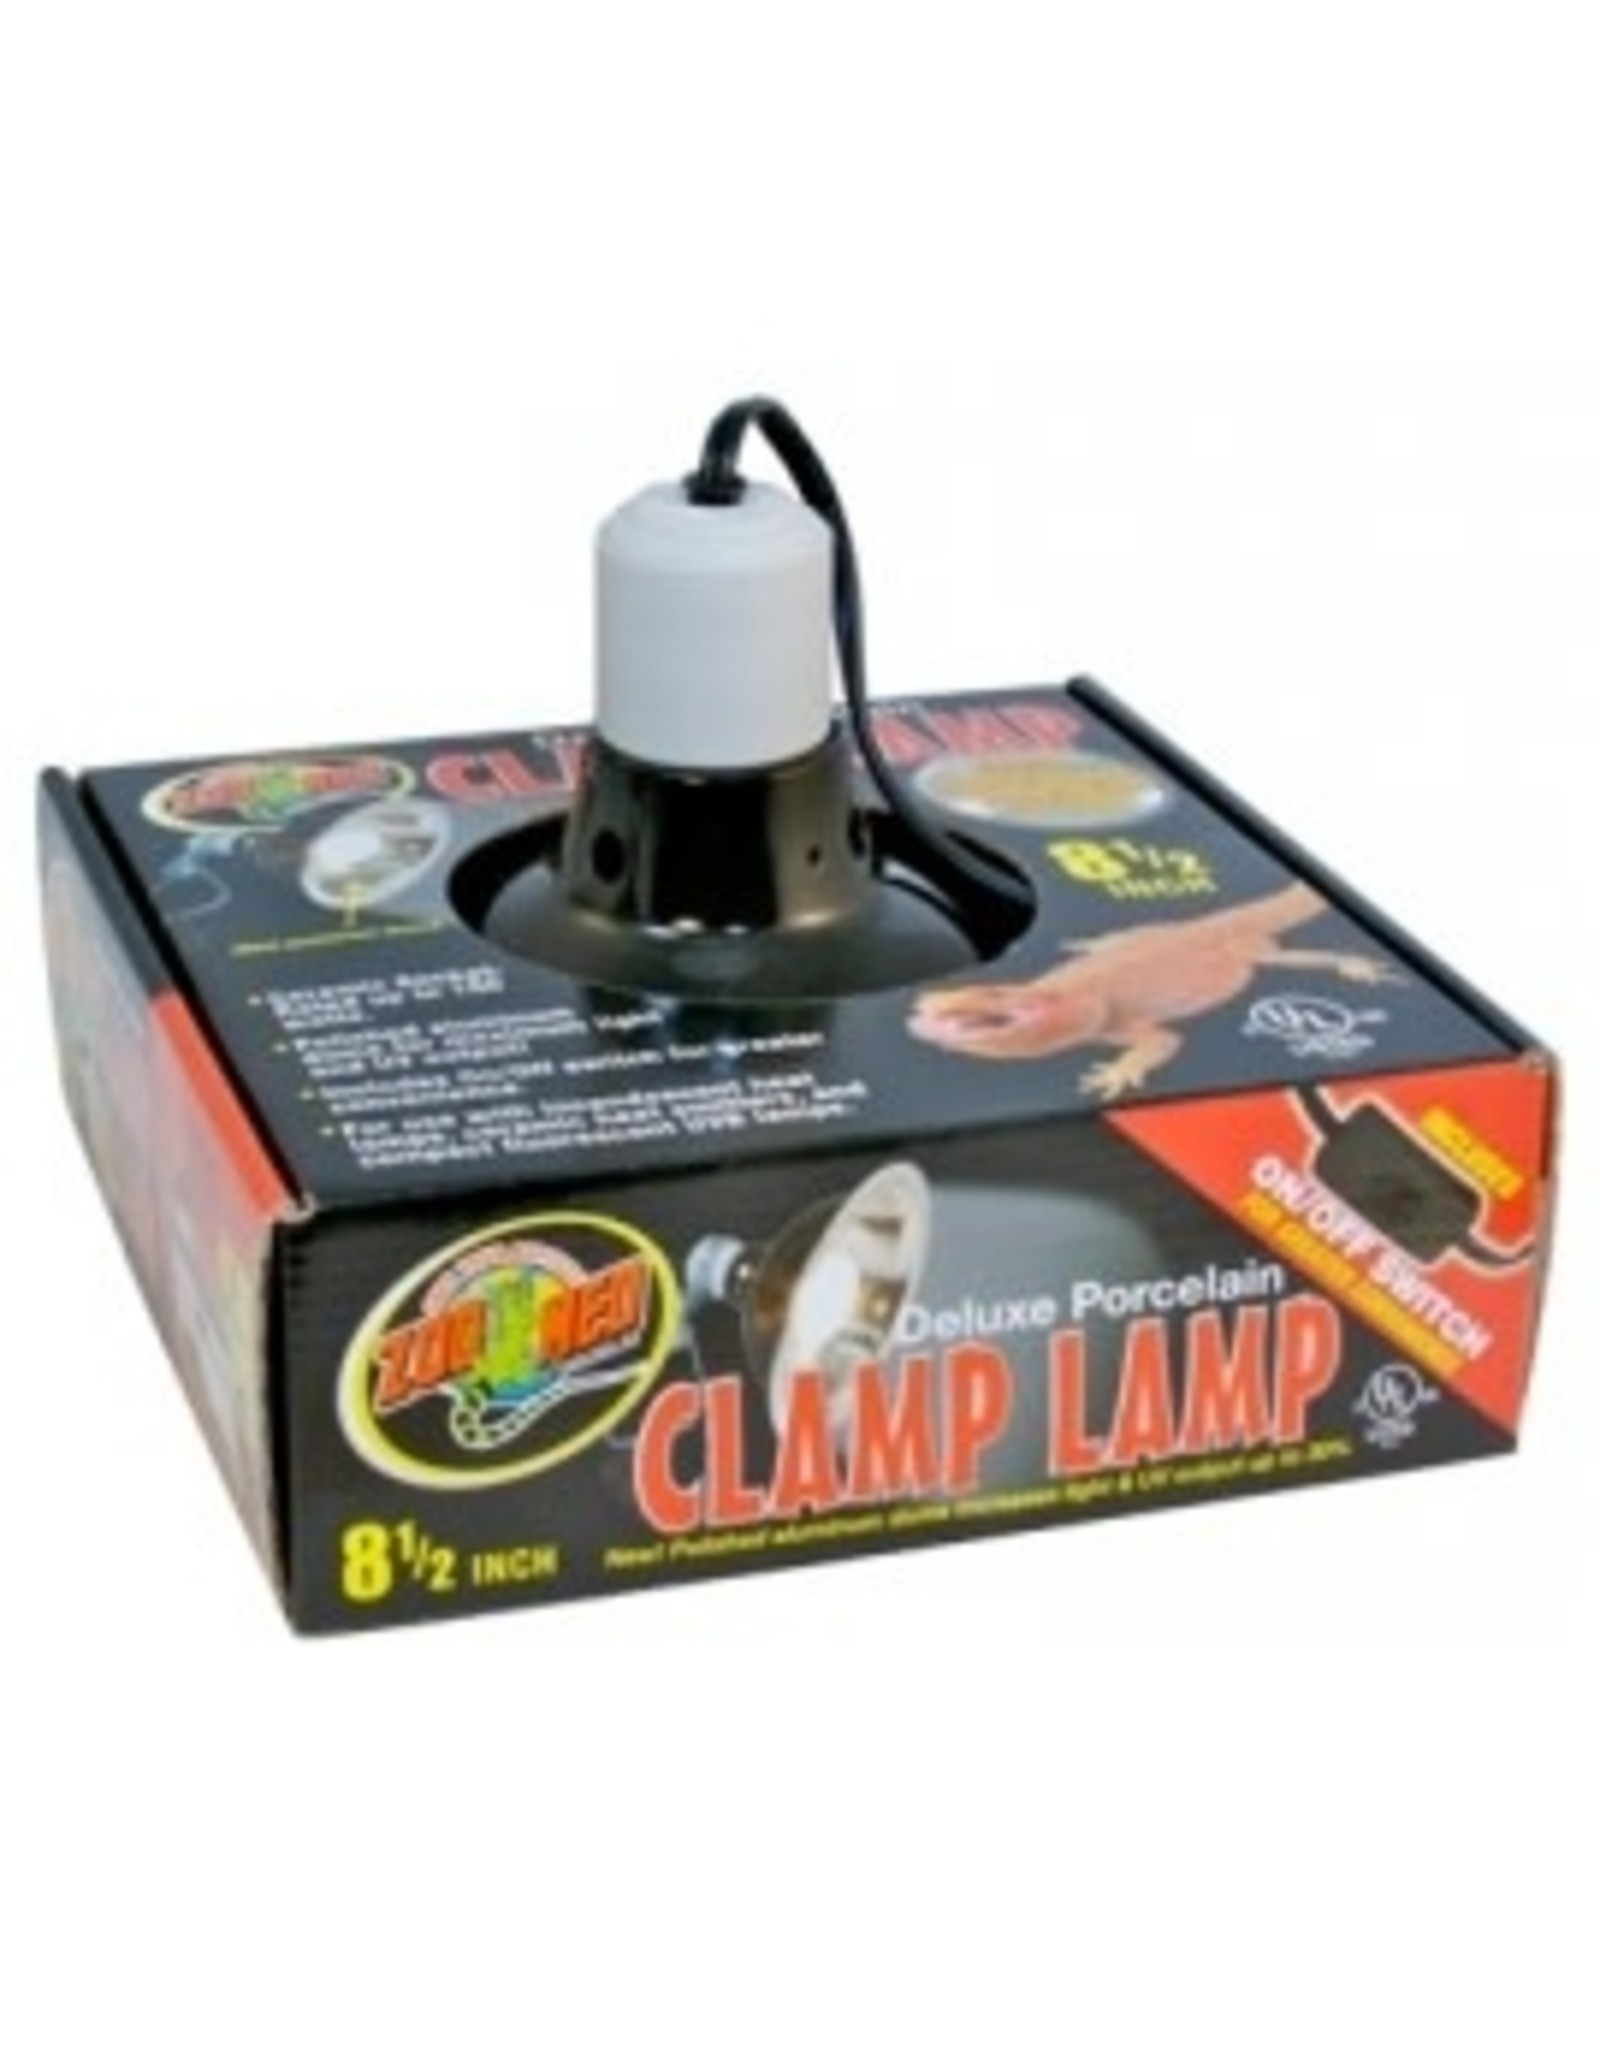 Zoomed CLAMP LAMP support DELUXE PORCELAINE